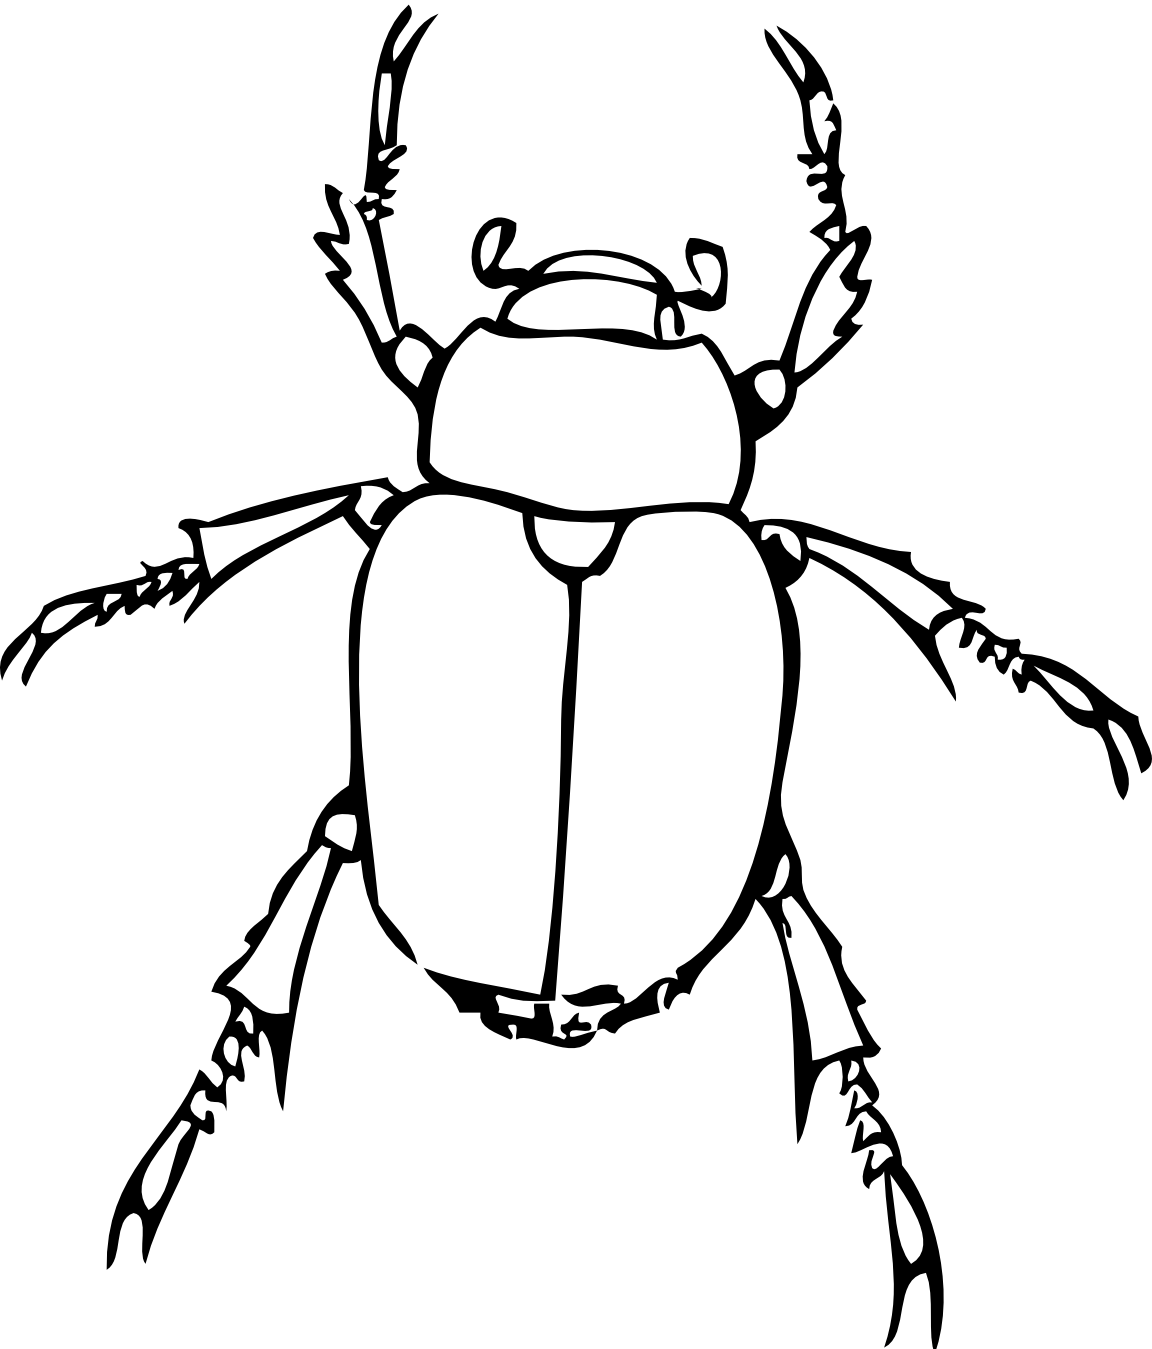 Einstein clipart sketch. Bug line drawing drawings